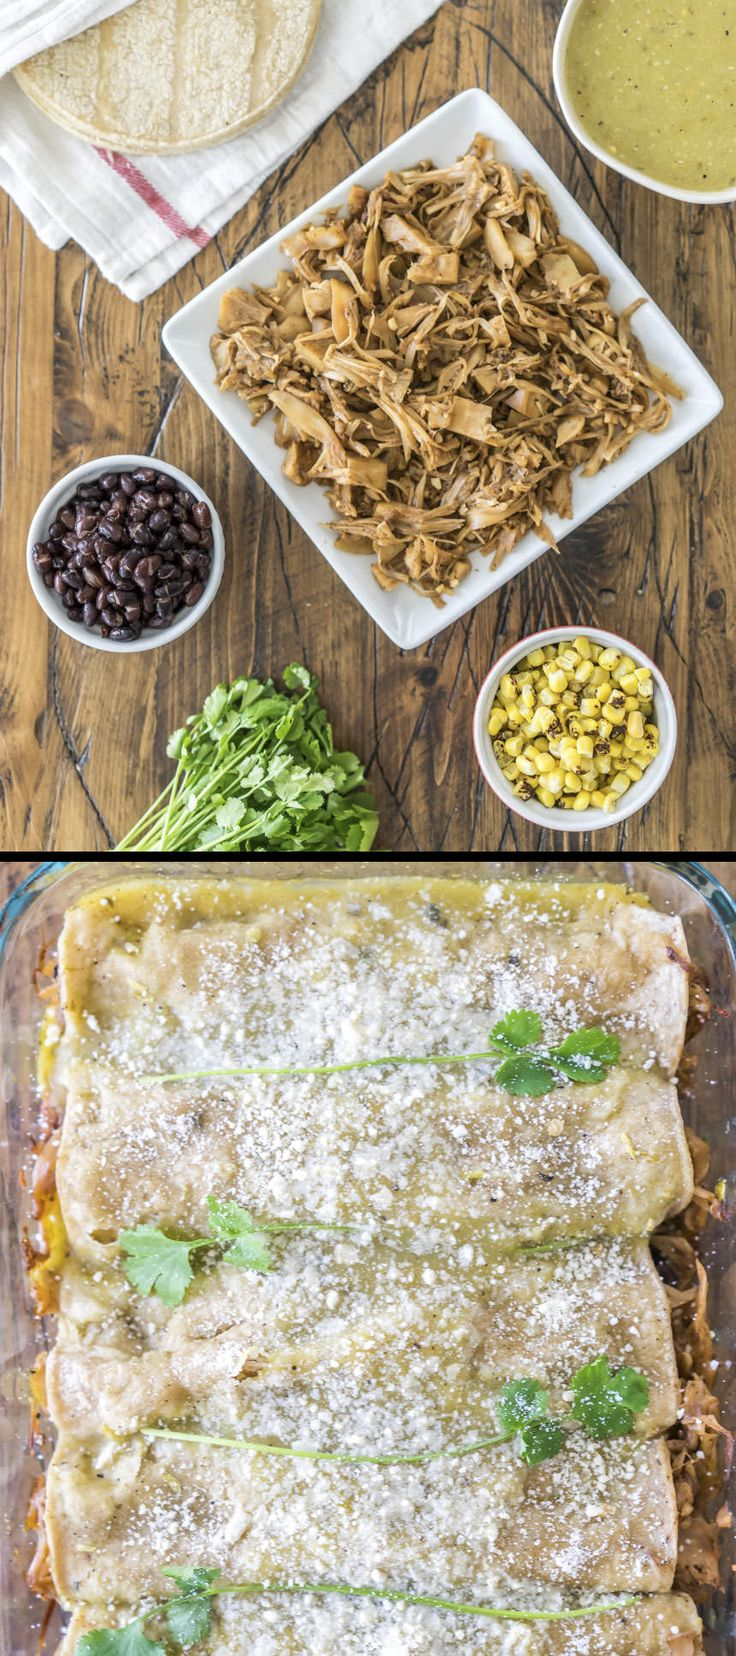 Vegan Enchiladas Verdes made with amazing pulled jackfruit and homemade green enchilada sauce!